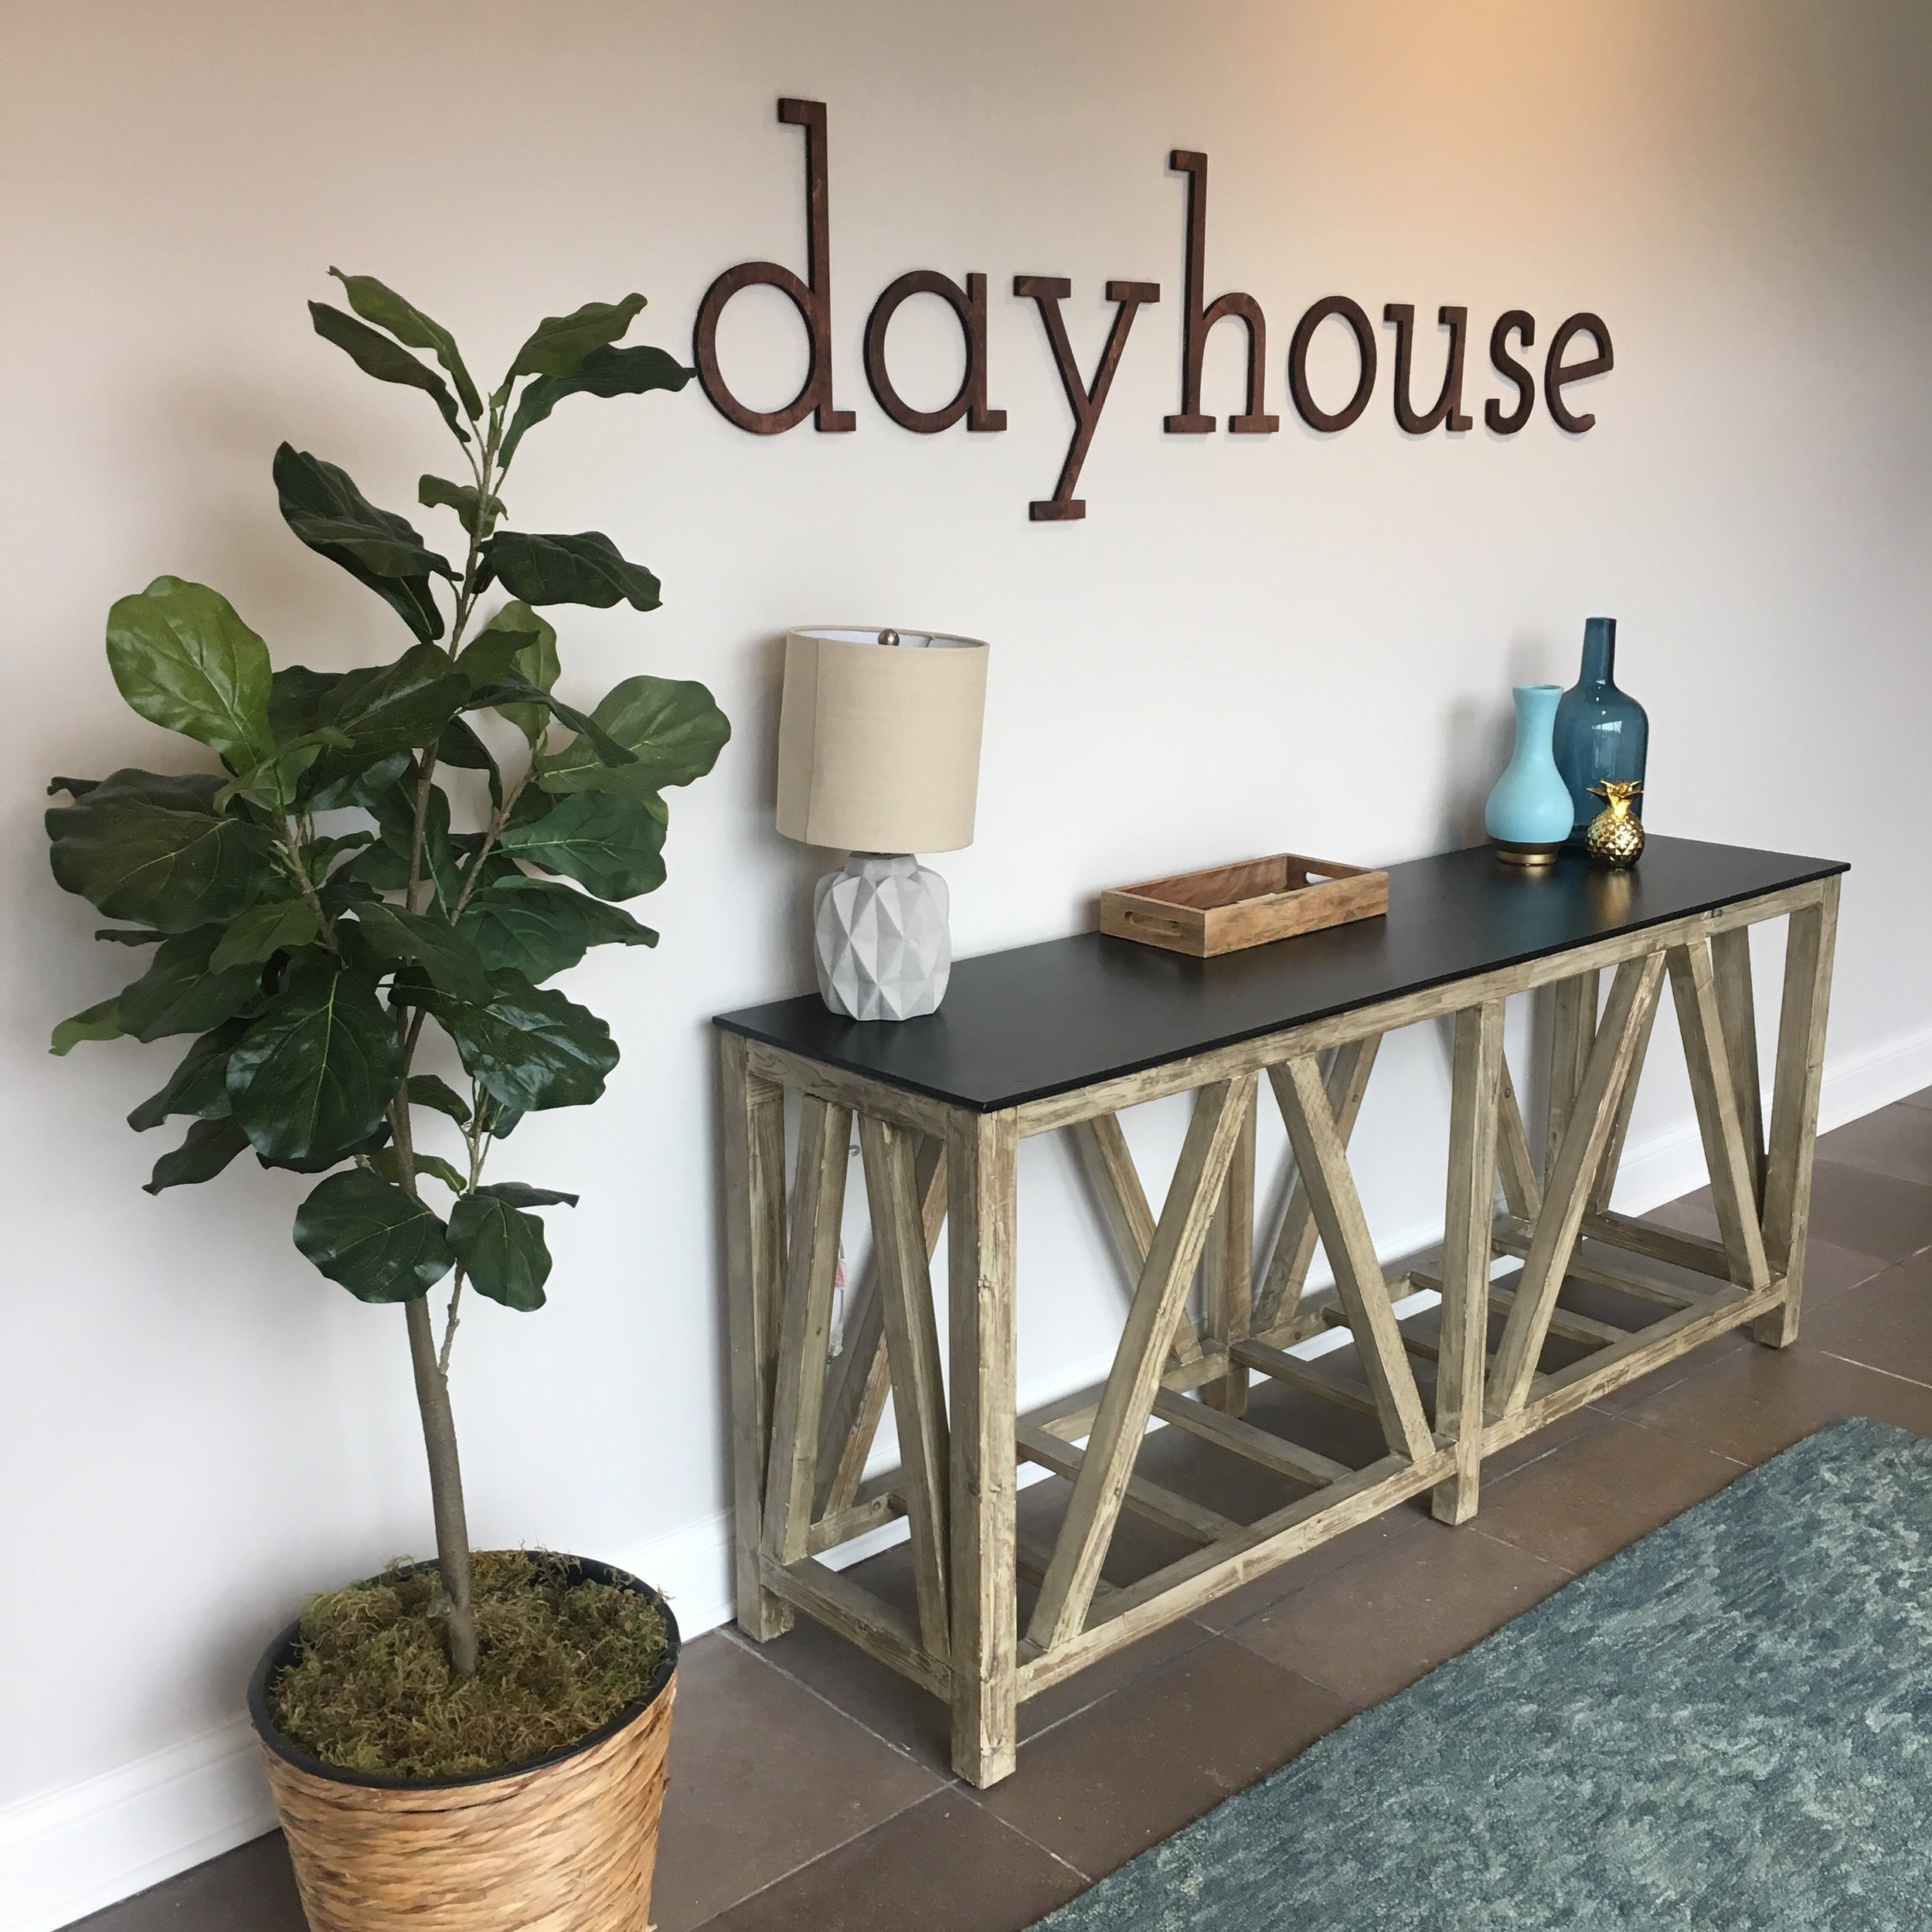 Dayhouse10.jpg